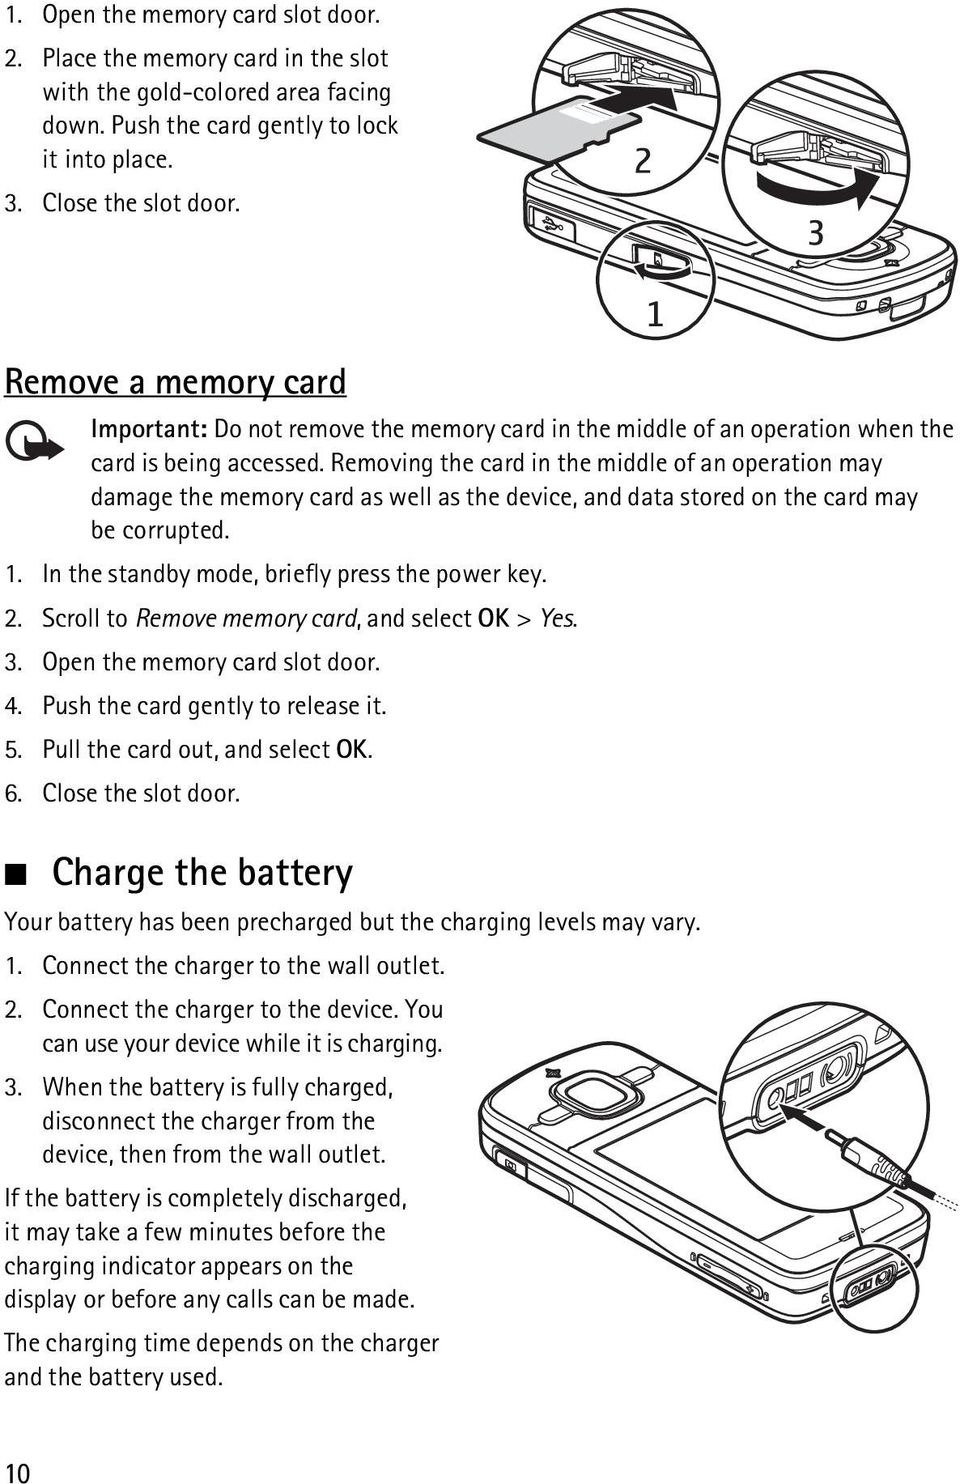 Removing the card in the middle of an operation may damage the memory card as well as the device, and data stored on the card may be corrupted. 1. In the standby mode, briefly press the power key. 2.